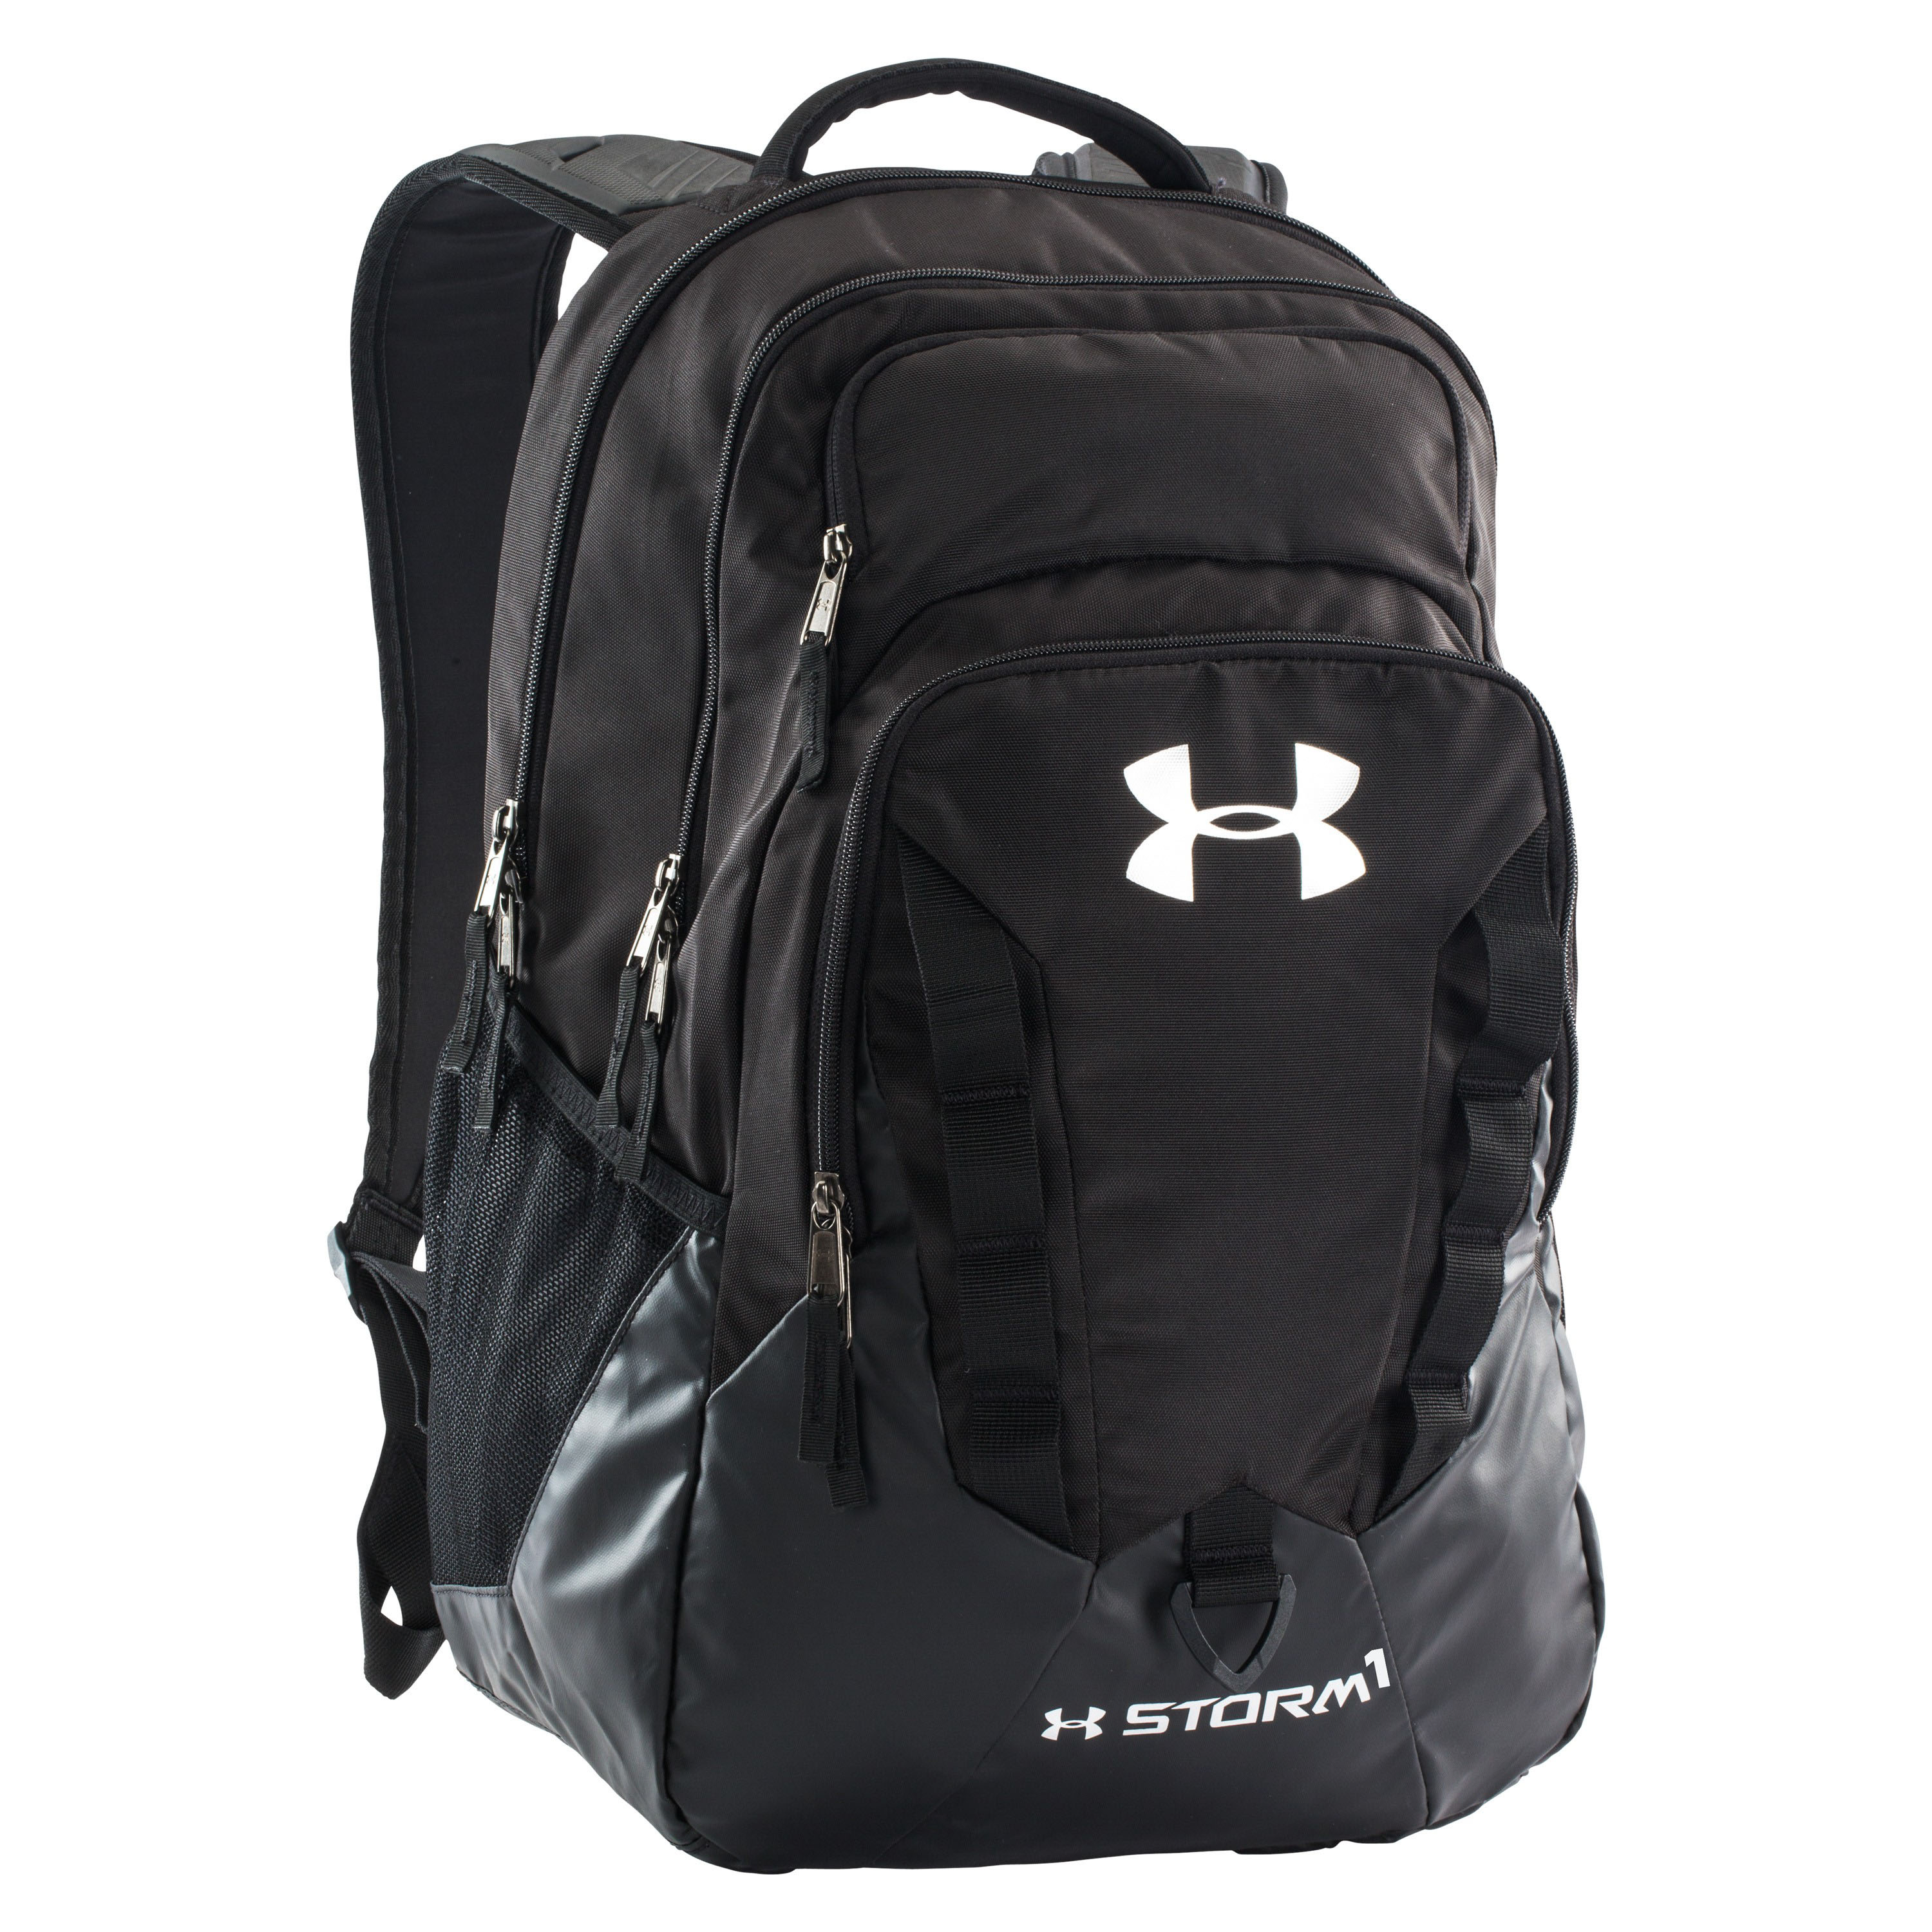 Under Armour Rucksack Recruit schwarz